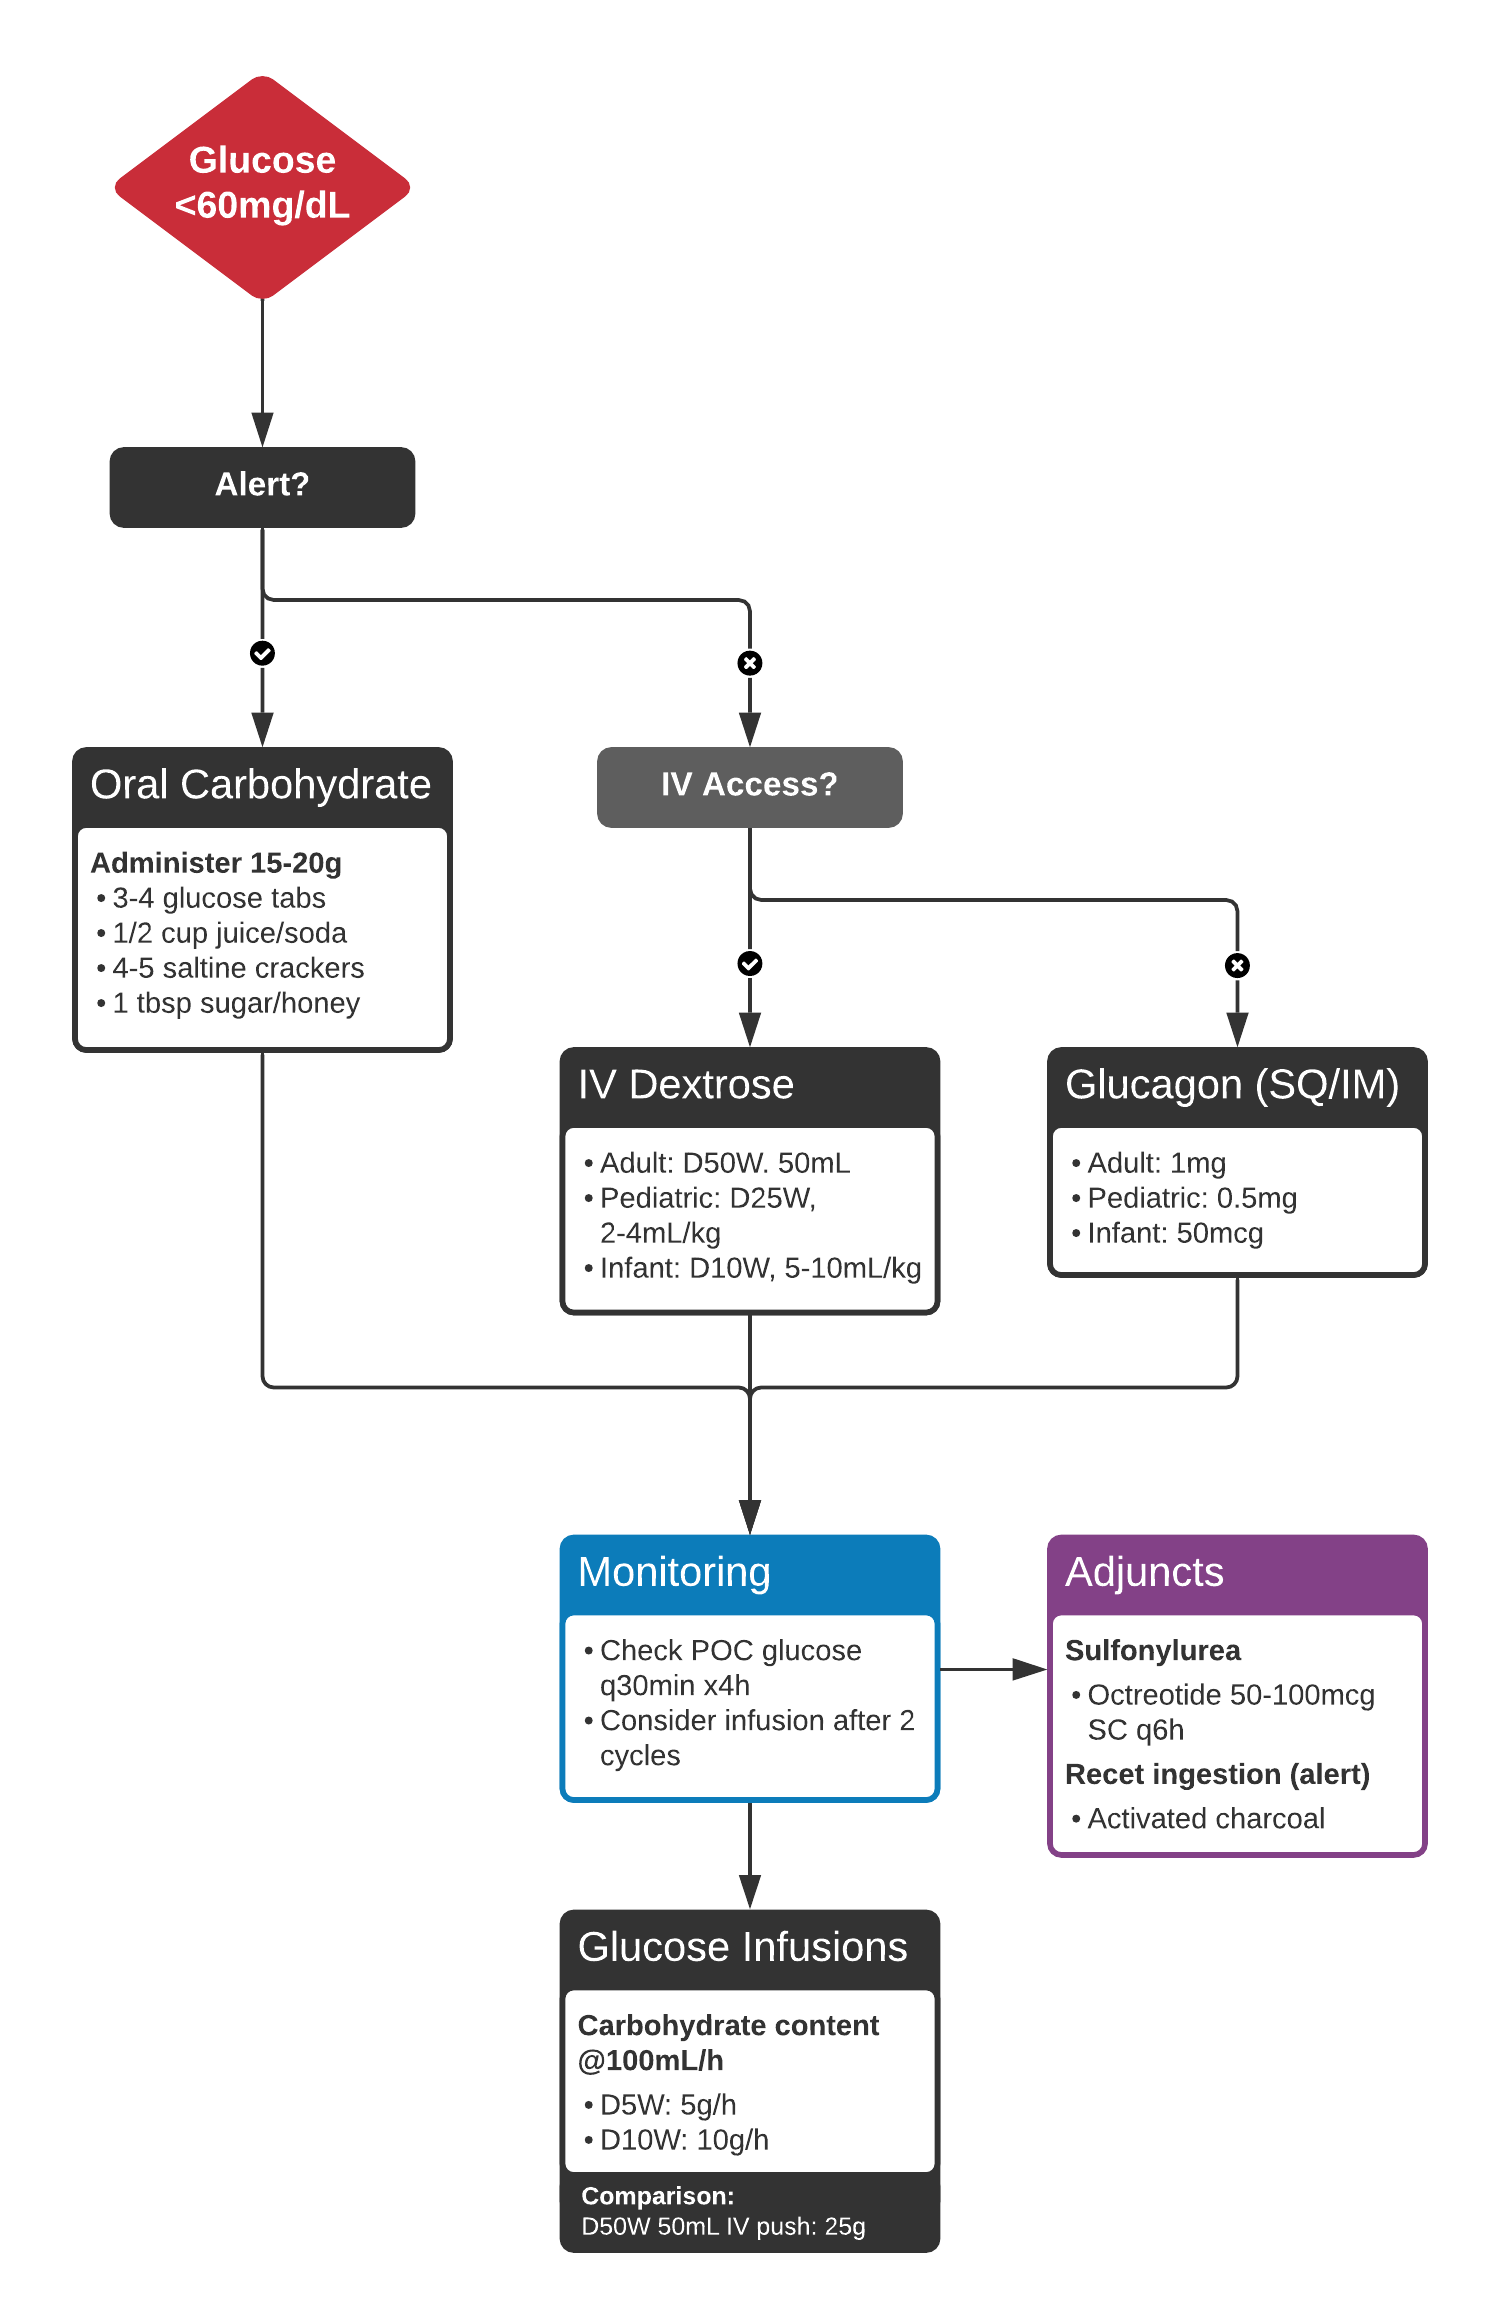 An algorithm for the management and monitoring of hypoglycemia